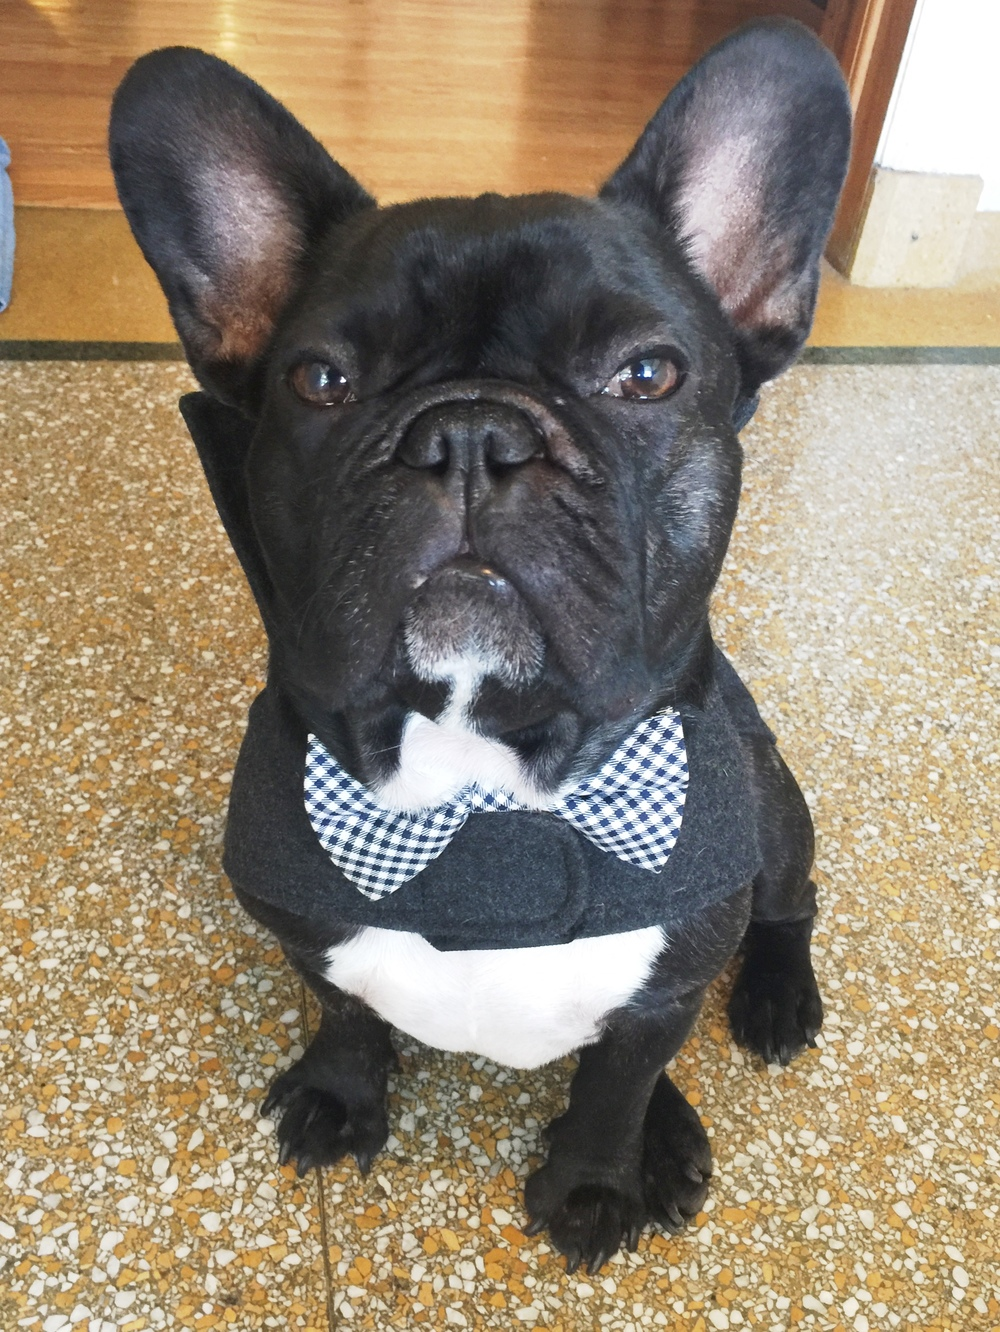 So in the morningtimes, to get all ready to go and stuff, I put on my handsome-ist bowtie plus my gentleman cozycoat!! Yup!! Pretty snazzy, amirite!!?? .................